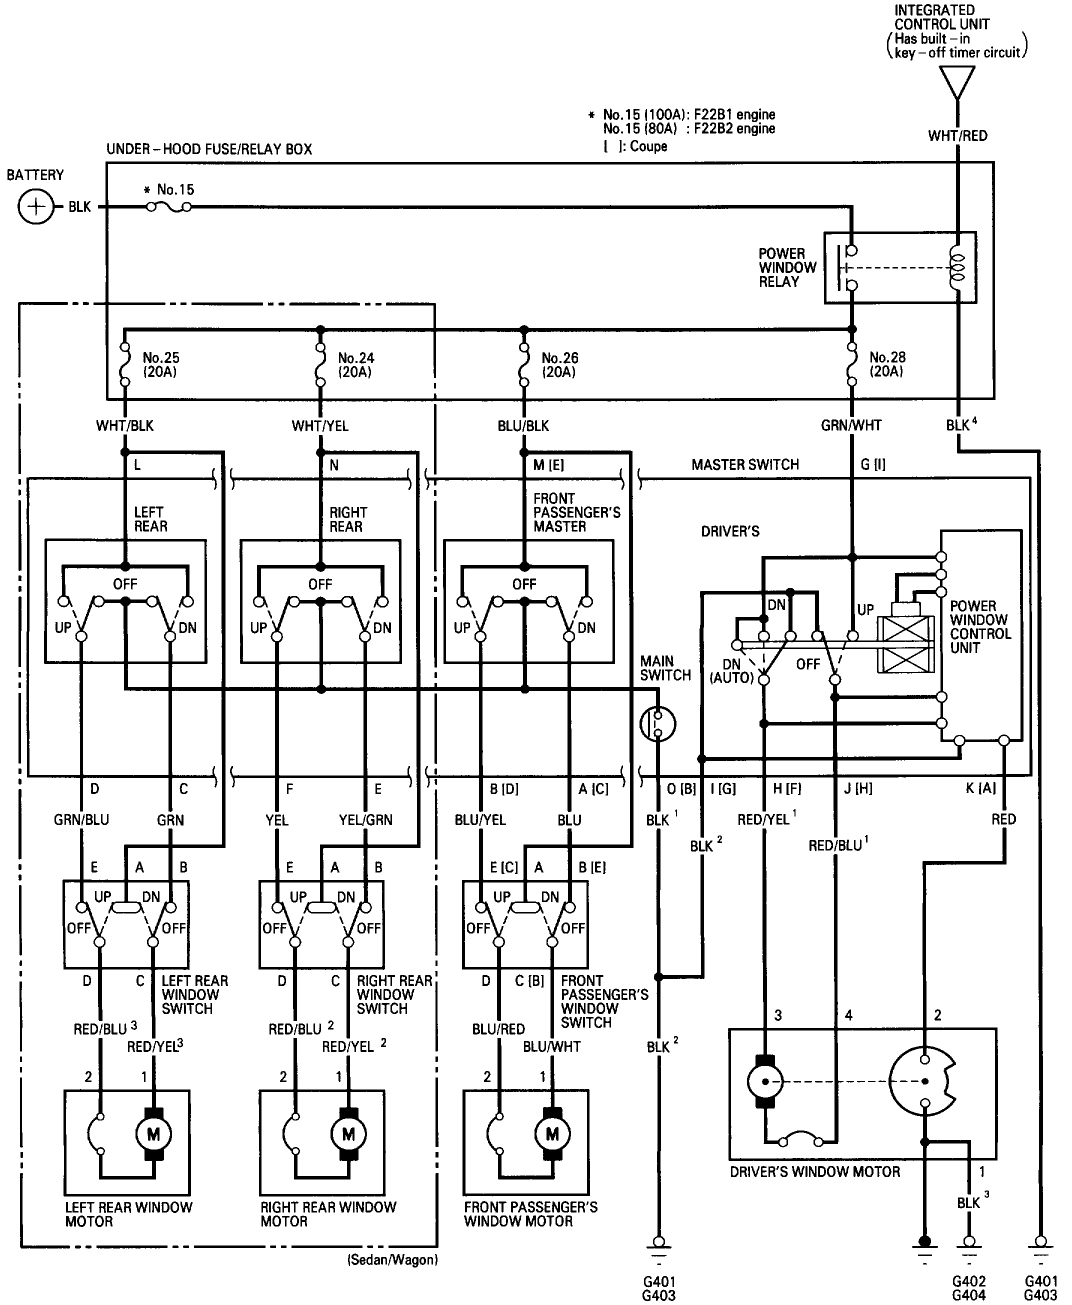 Honda Crv Radio Wiring Diagram